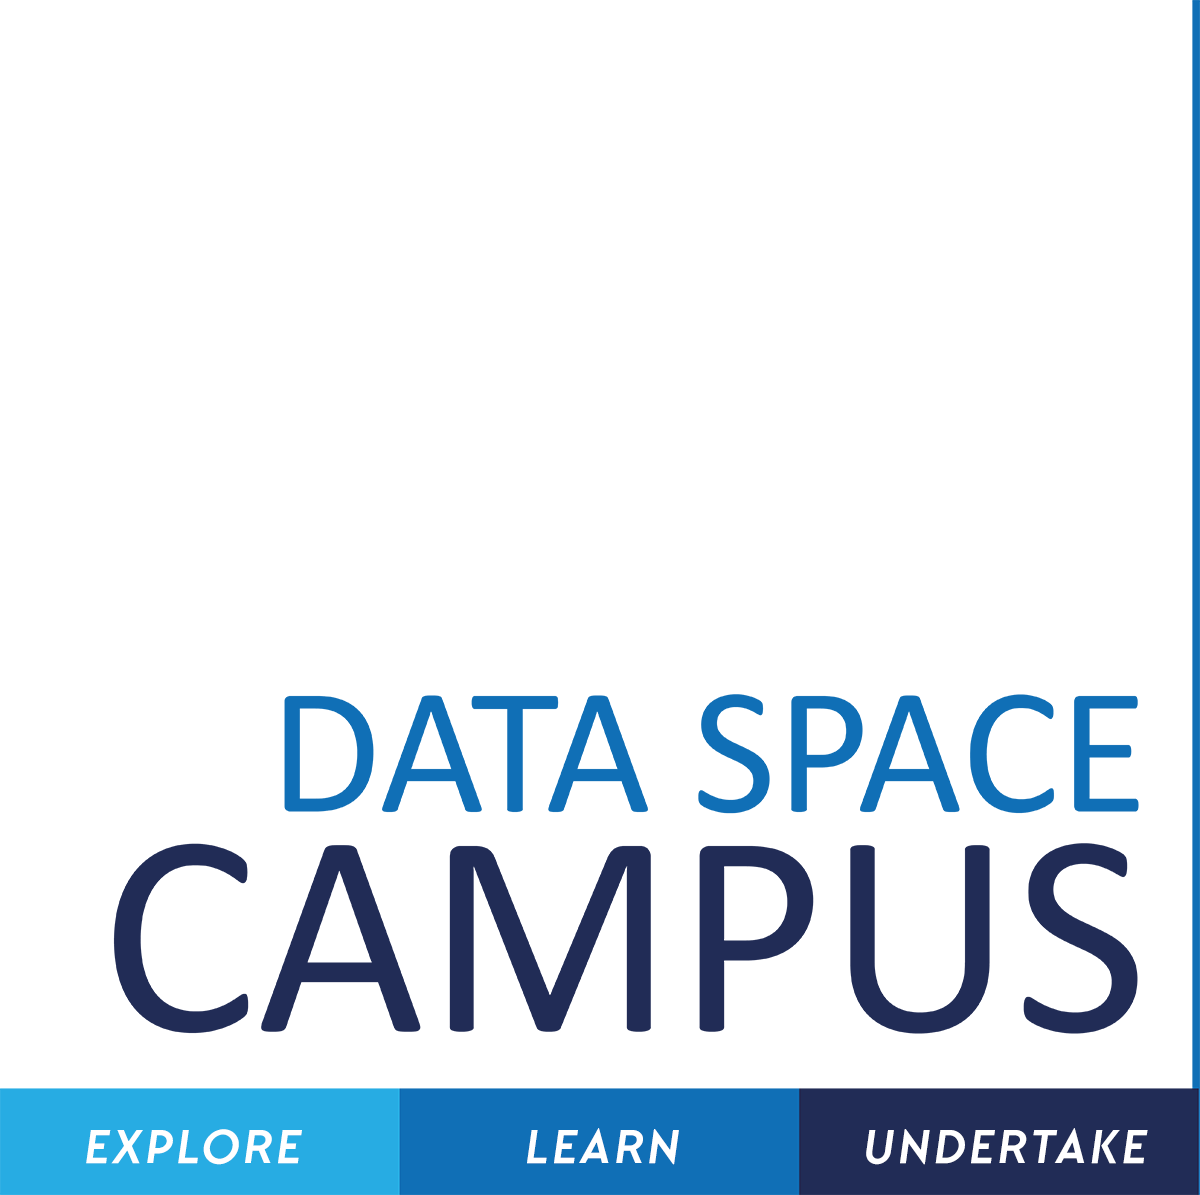 Data_space